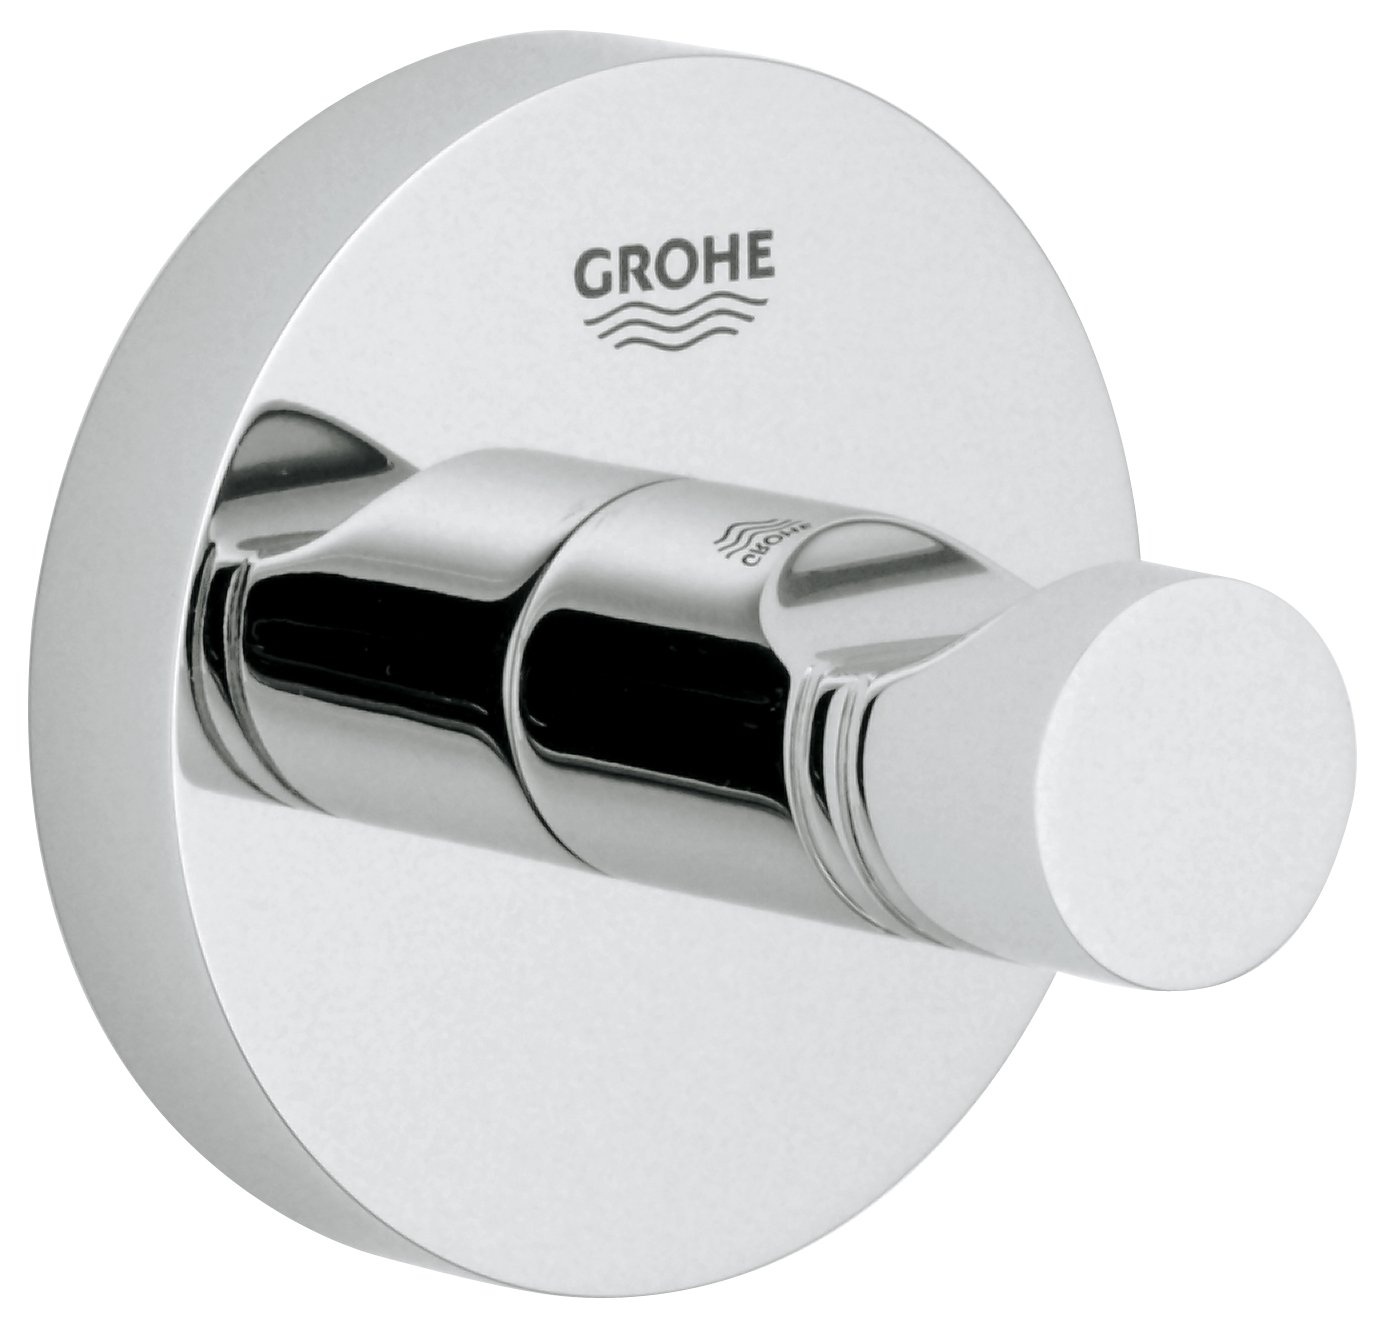 Grohe 40364000 Essentials Robe Hook by GROHE